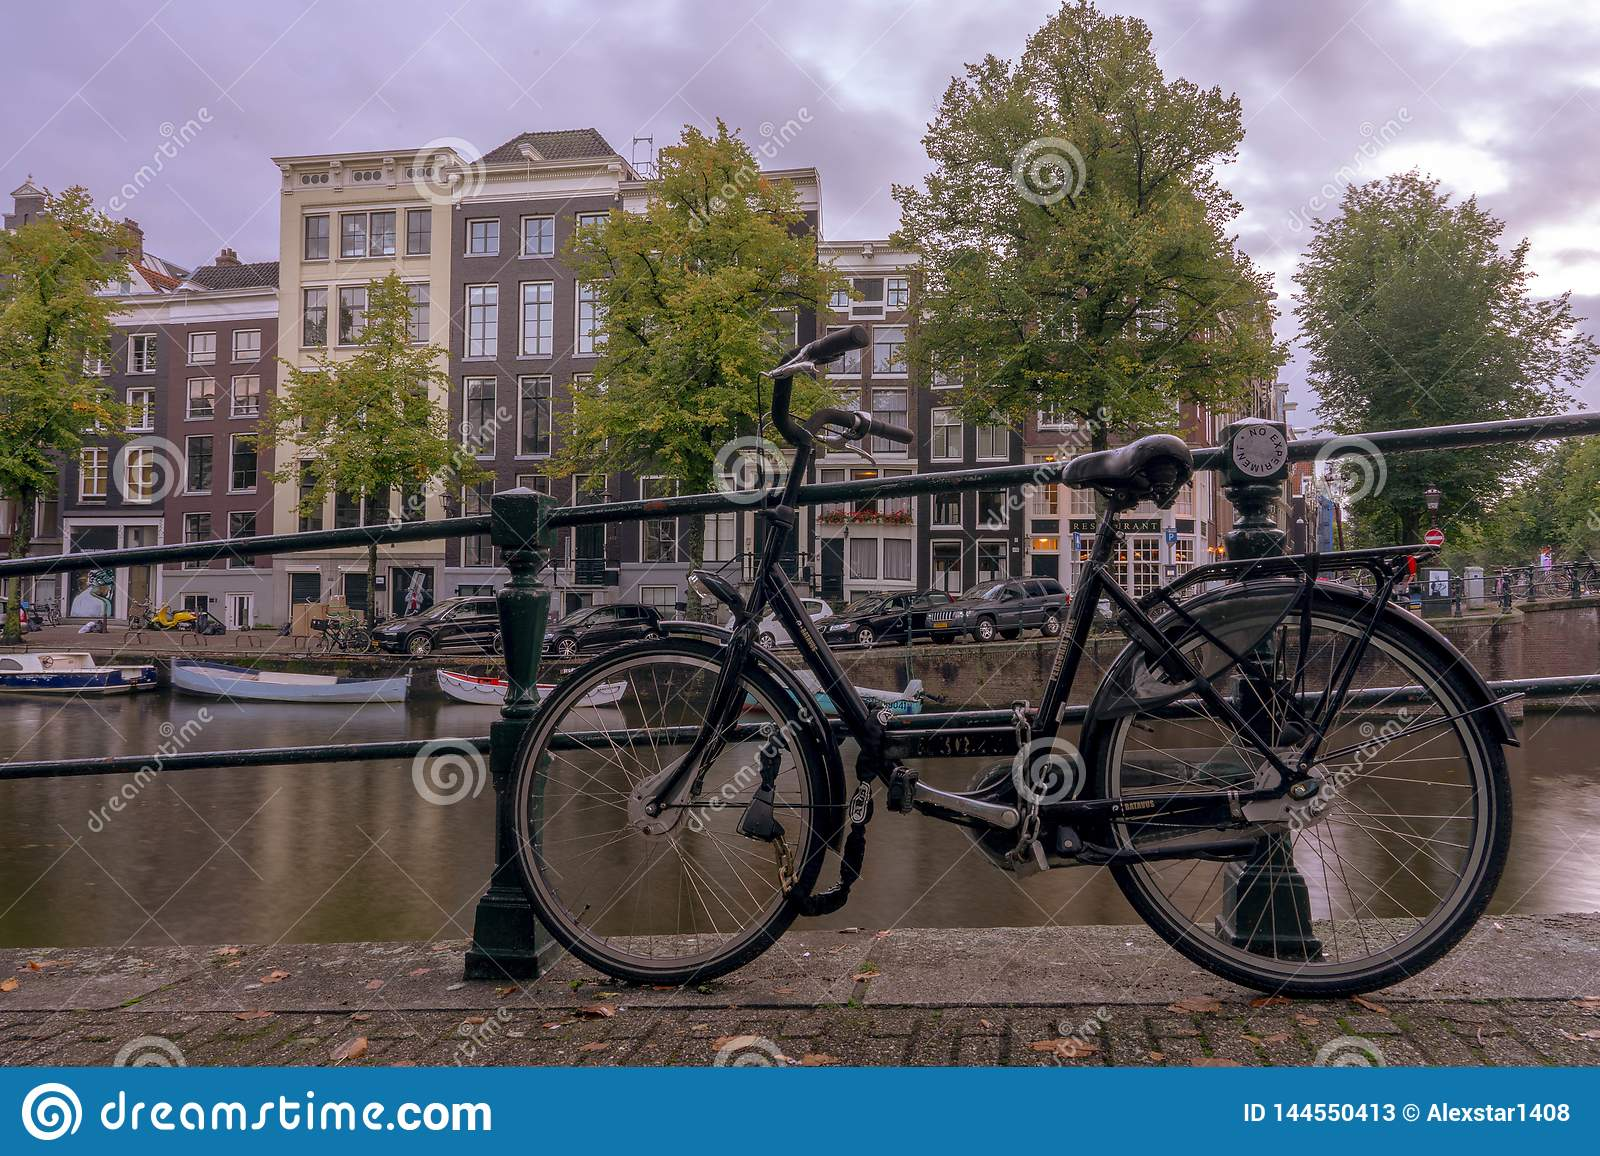 Amsterdam bike on the canal